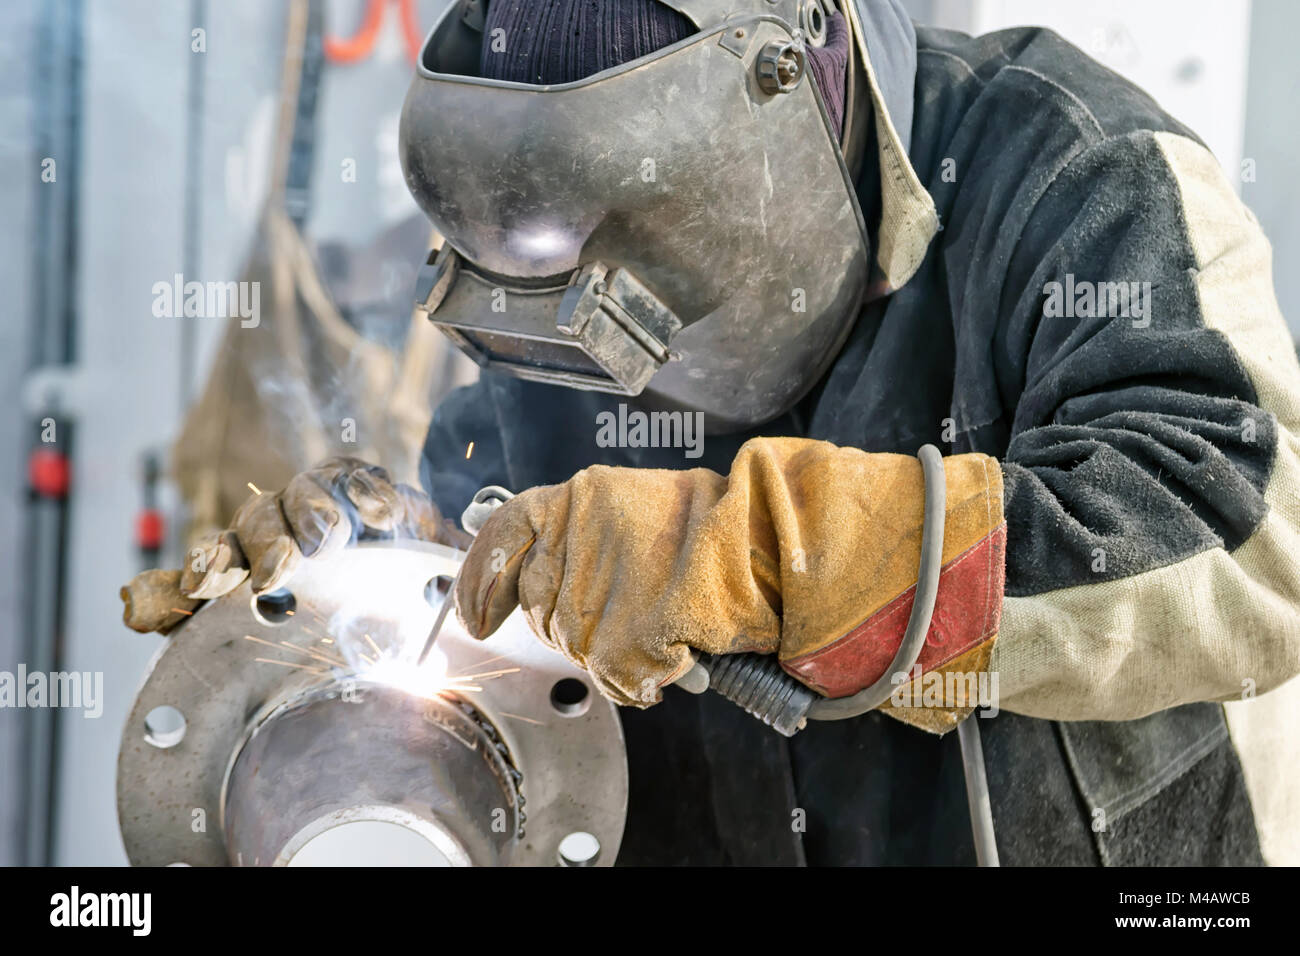 Welding works on manufacturing of units and parts of pipelines - Stock Image